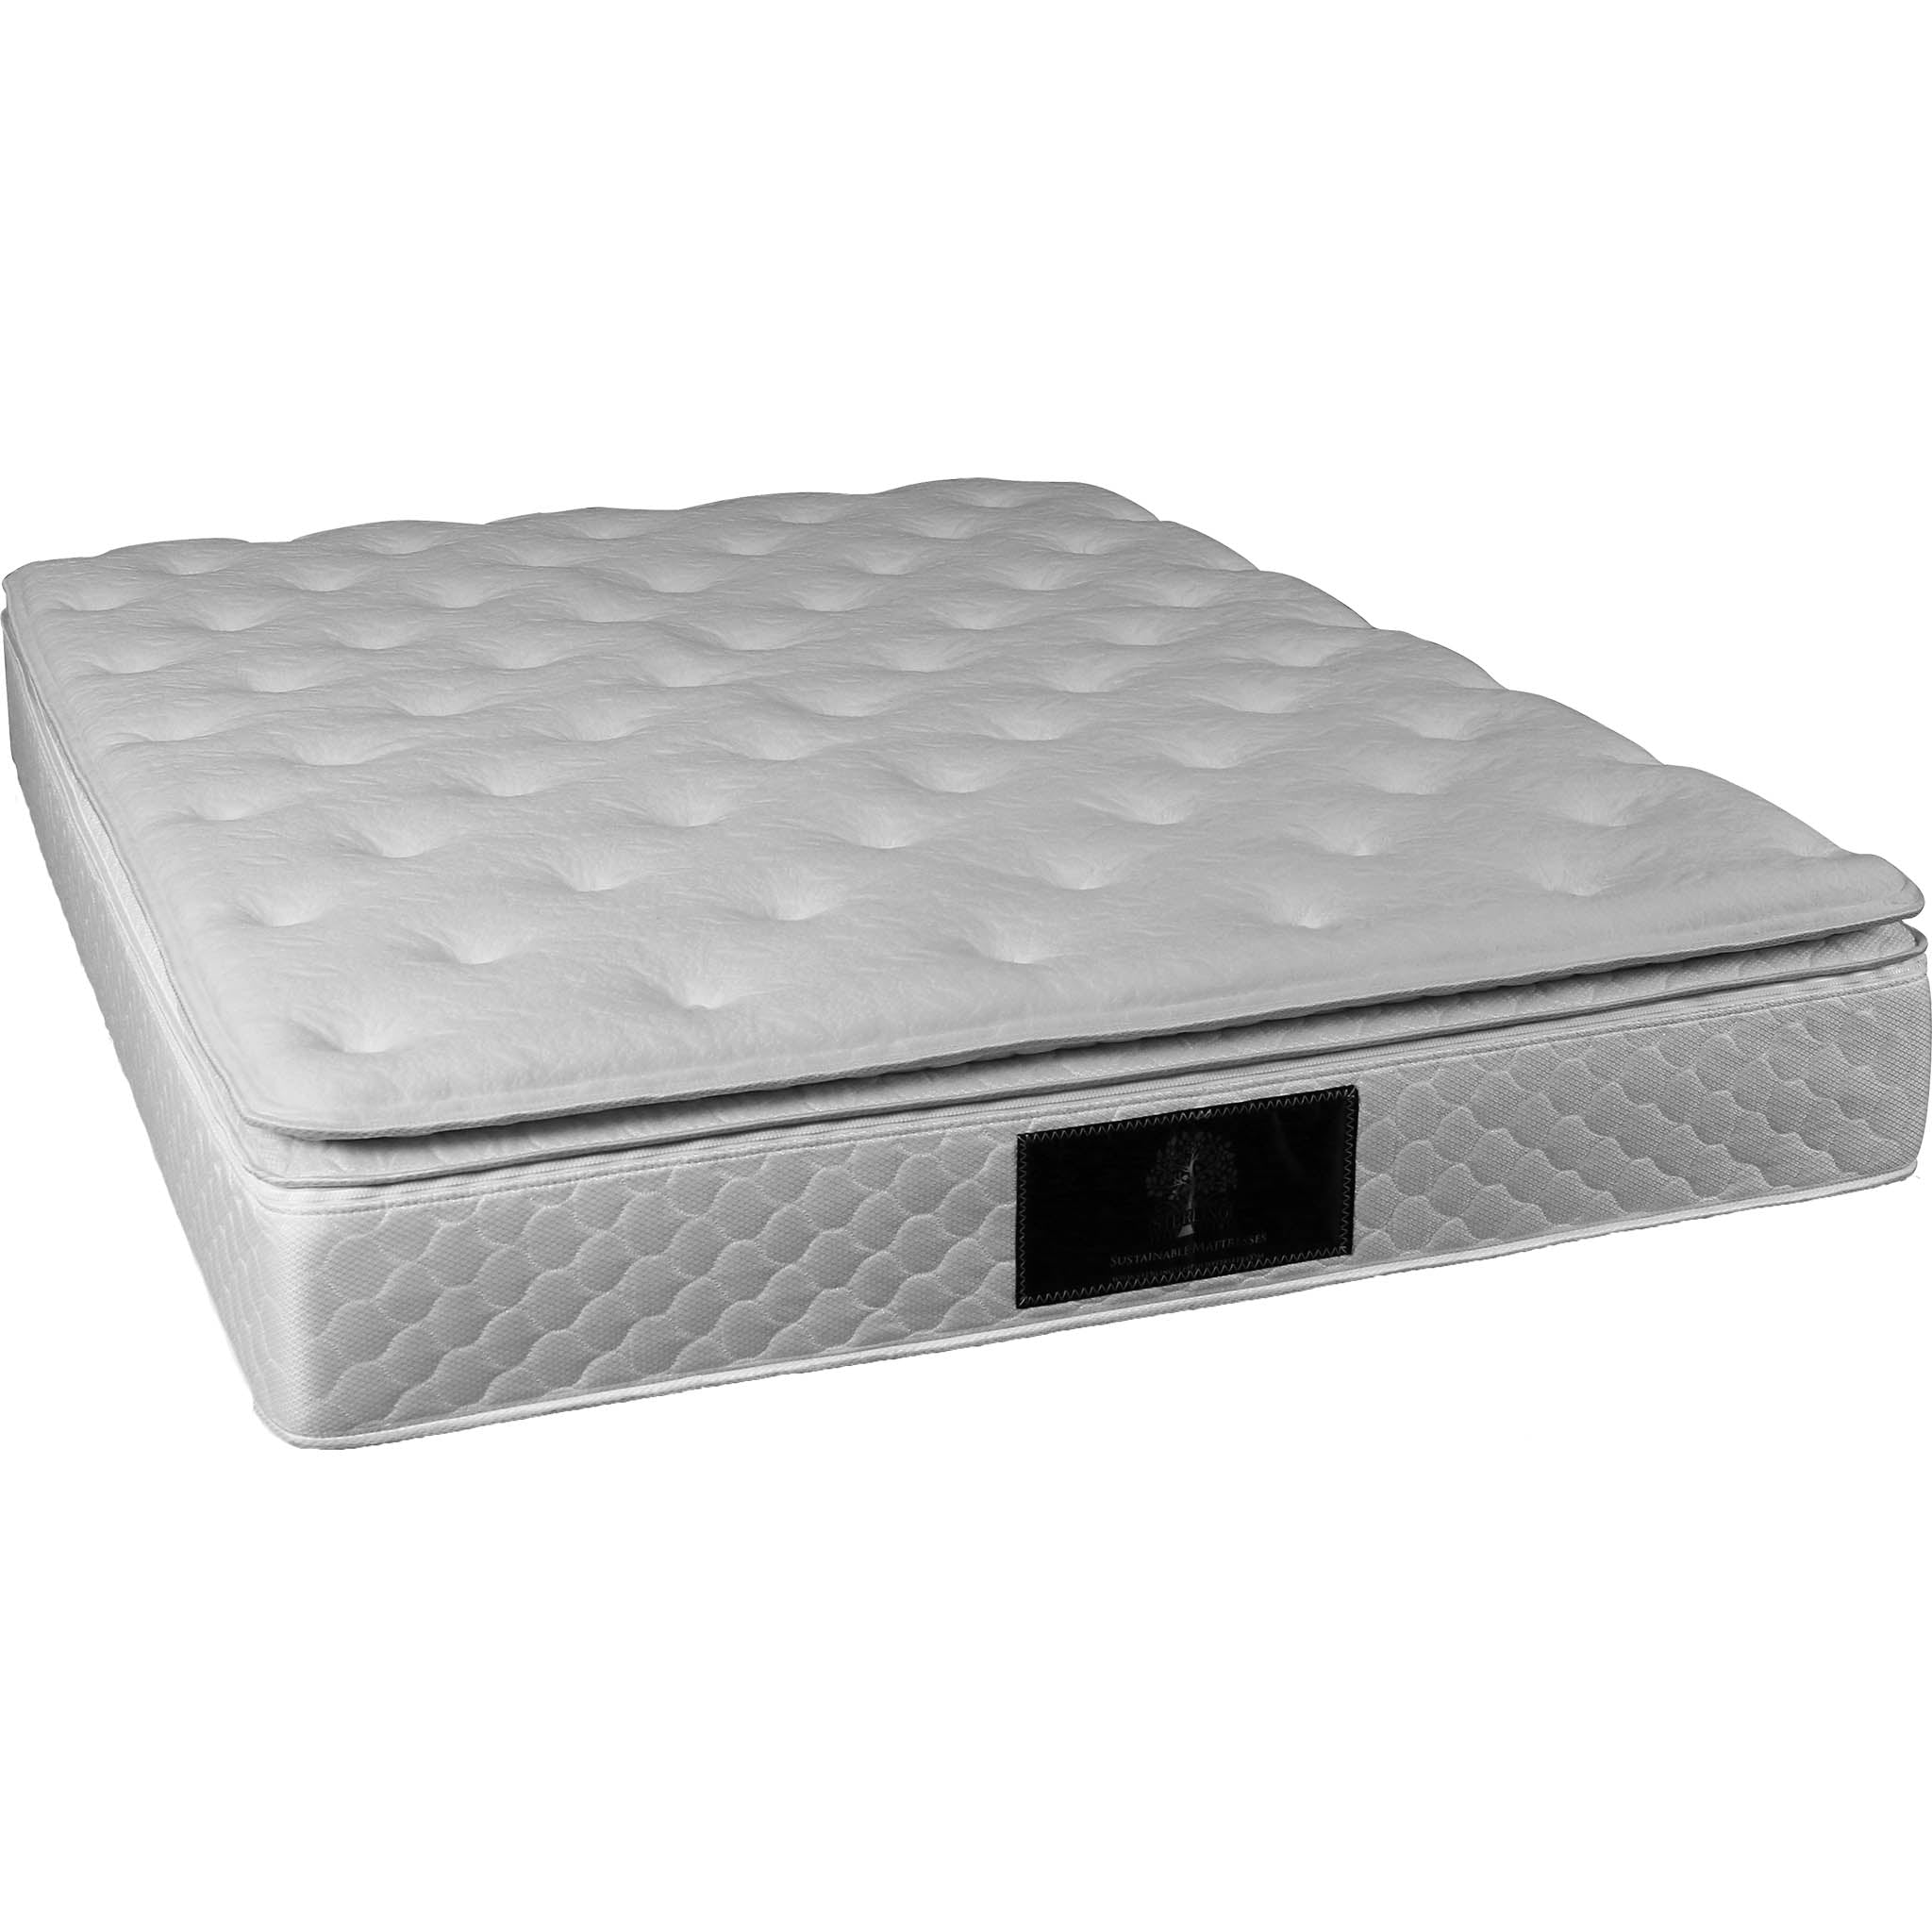 Imperial 620/625 Mattress - Sterling Sleep Systems